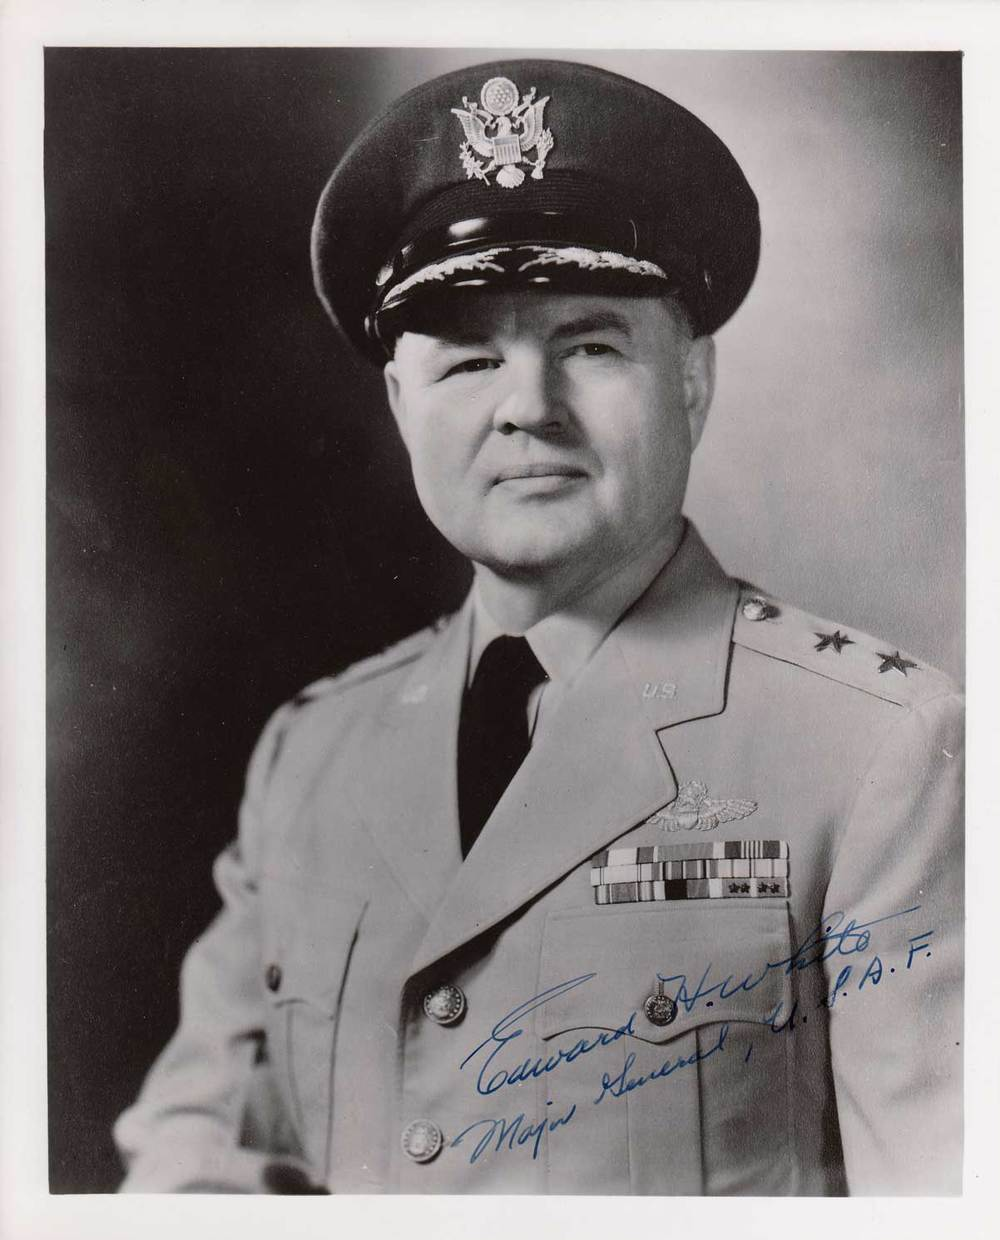 General Edward H. White, father of the astronaut.